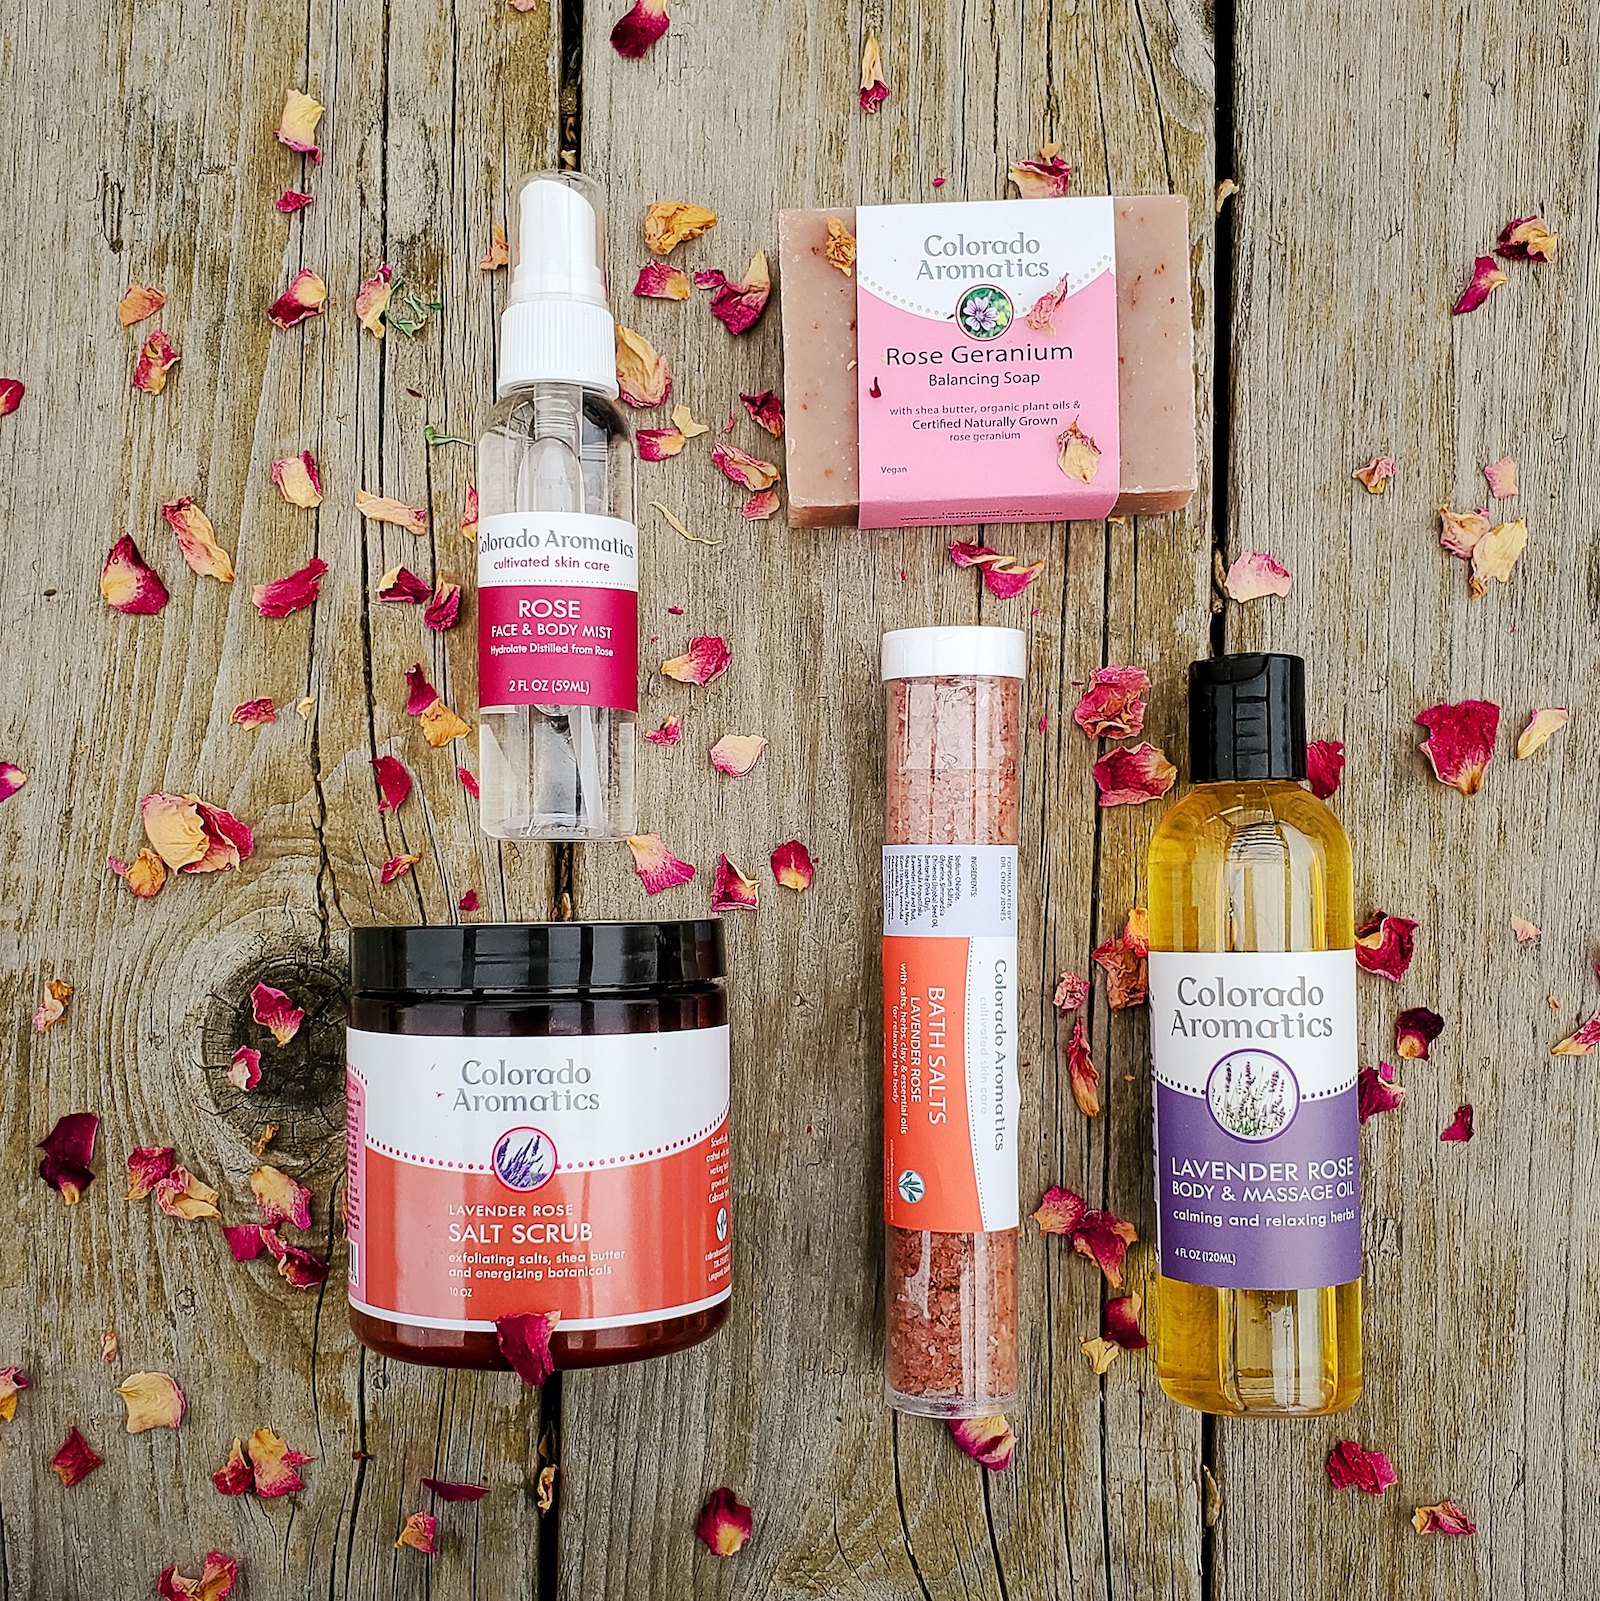 Image of products made with rose from Colorado Aromatics